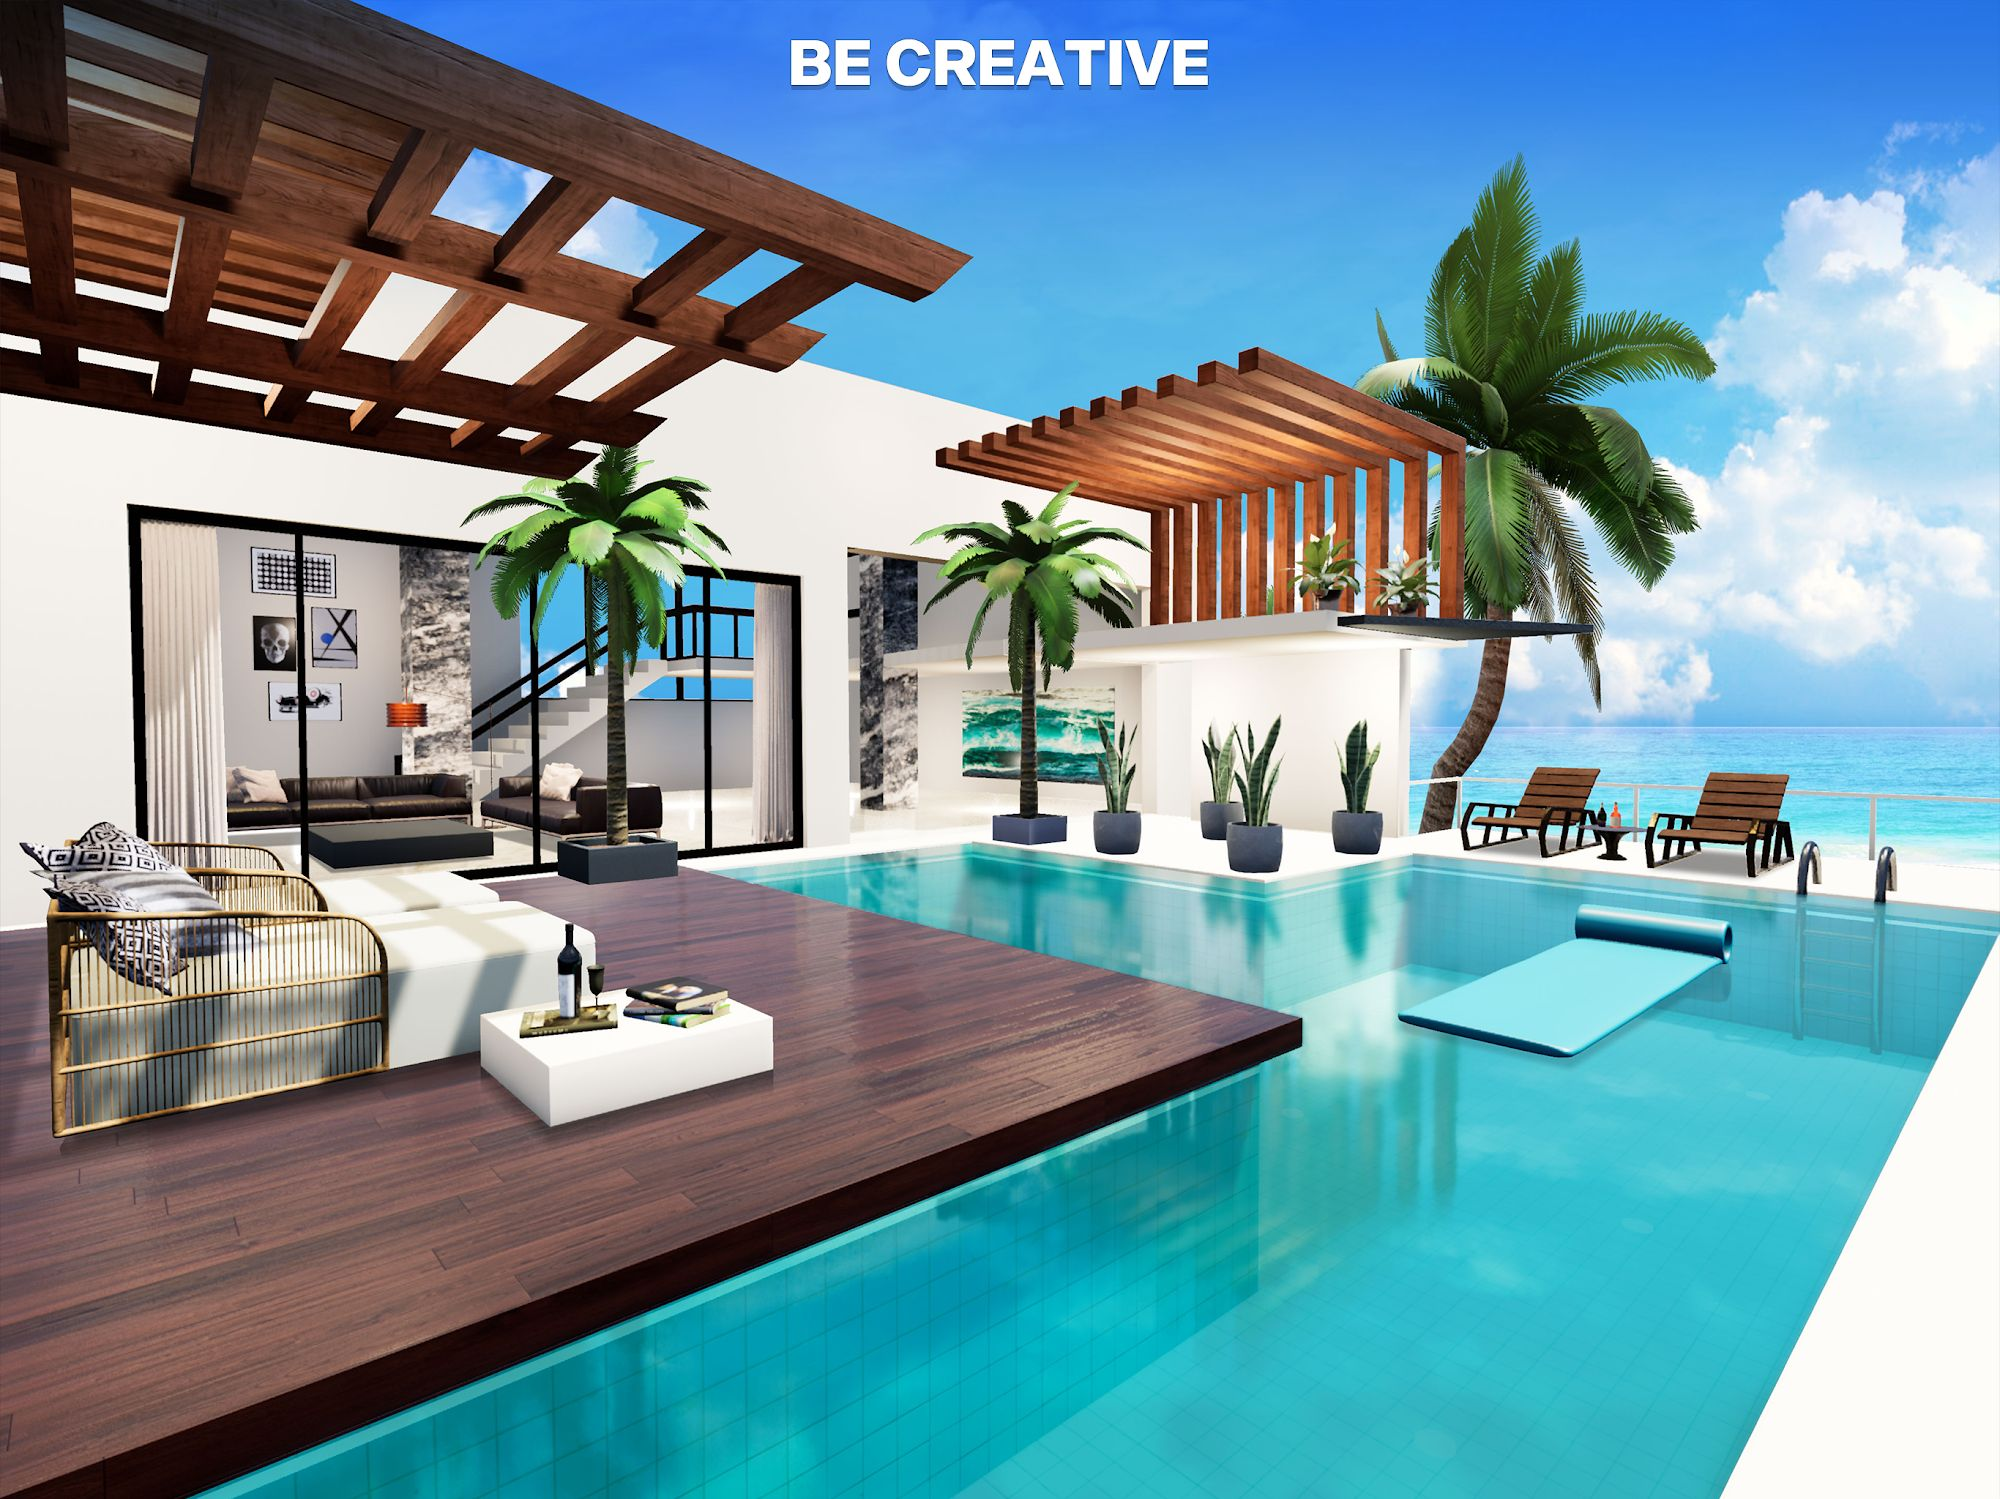 Home Design : My Lottery Dream Home captura de pantalla 1